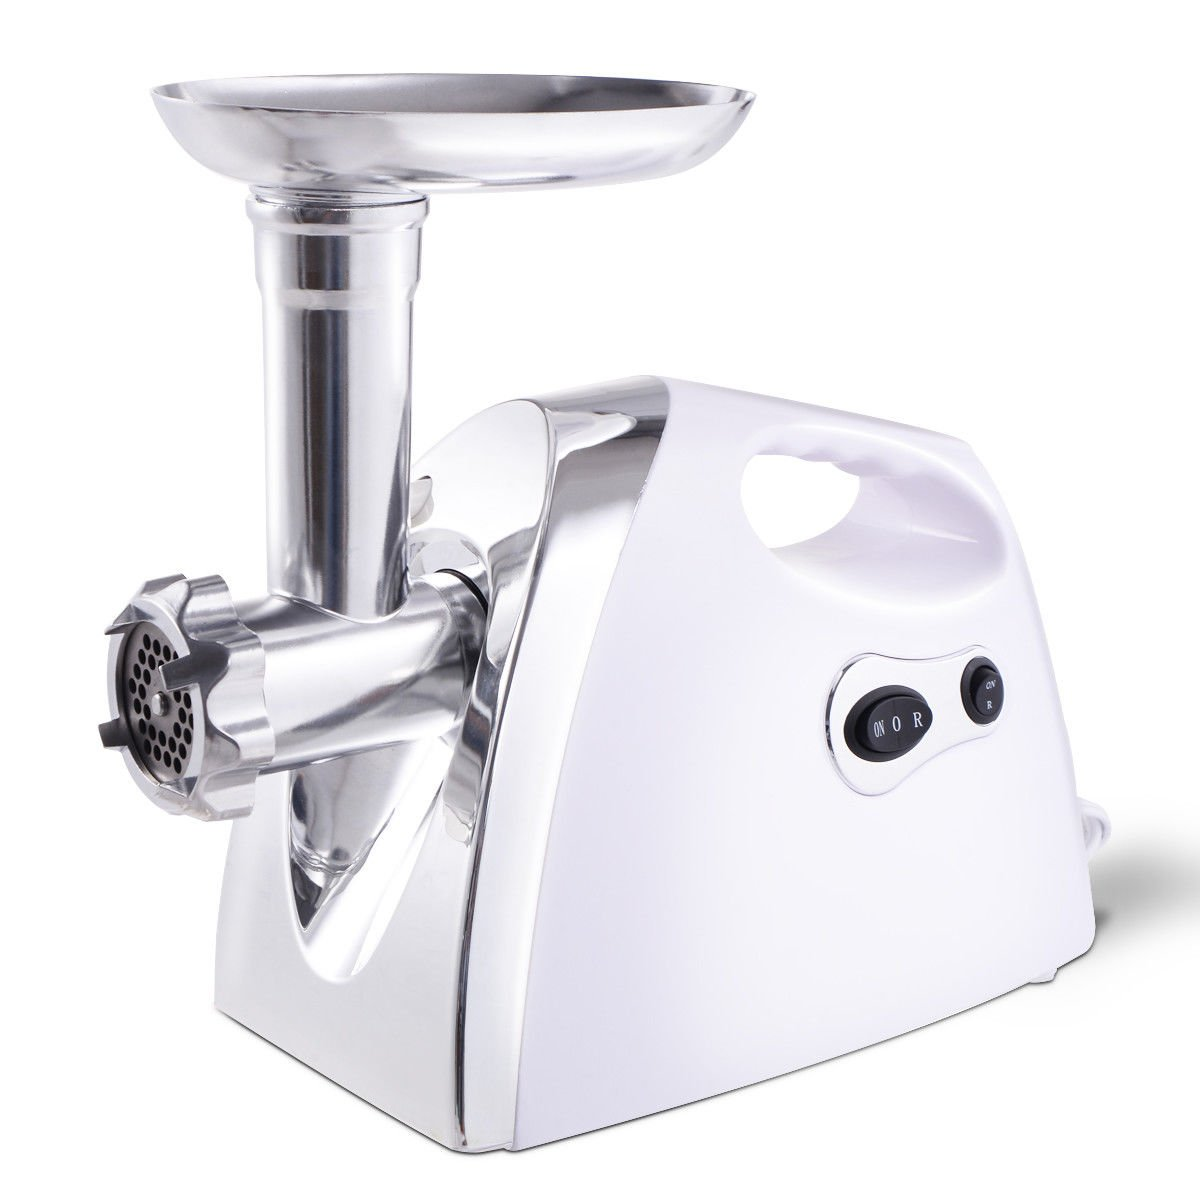 Giantex 2800W Electric Meat Grinder Sausage Stuffer Maker Stainless Cutter Home